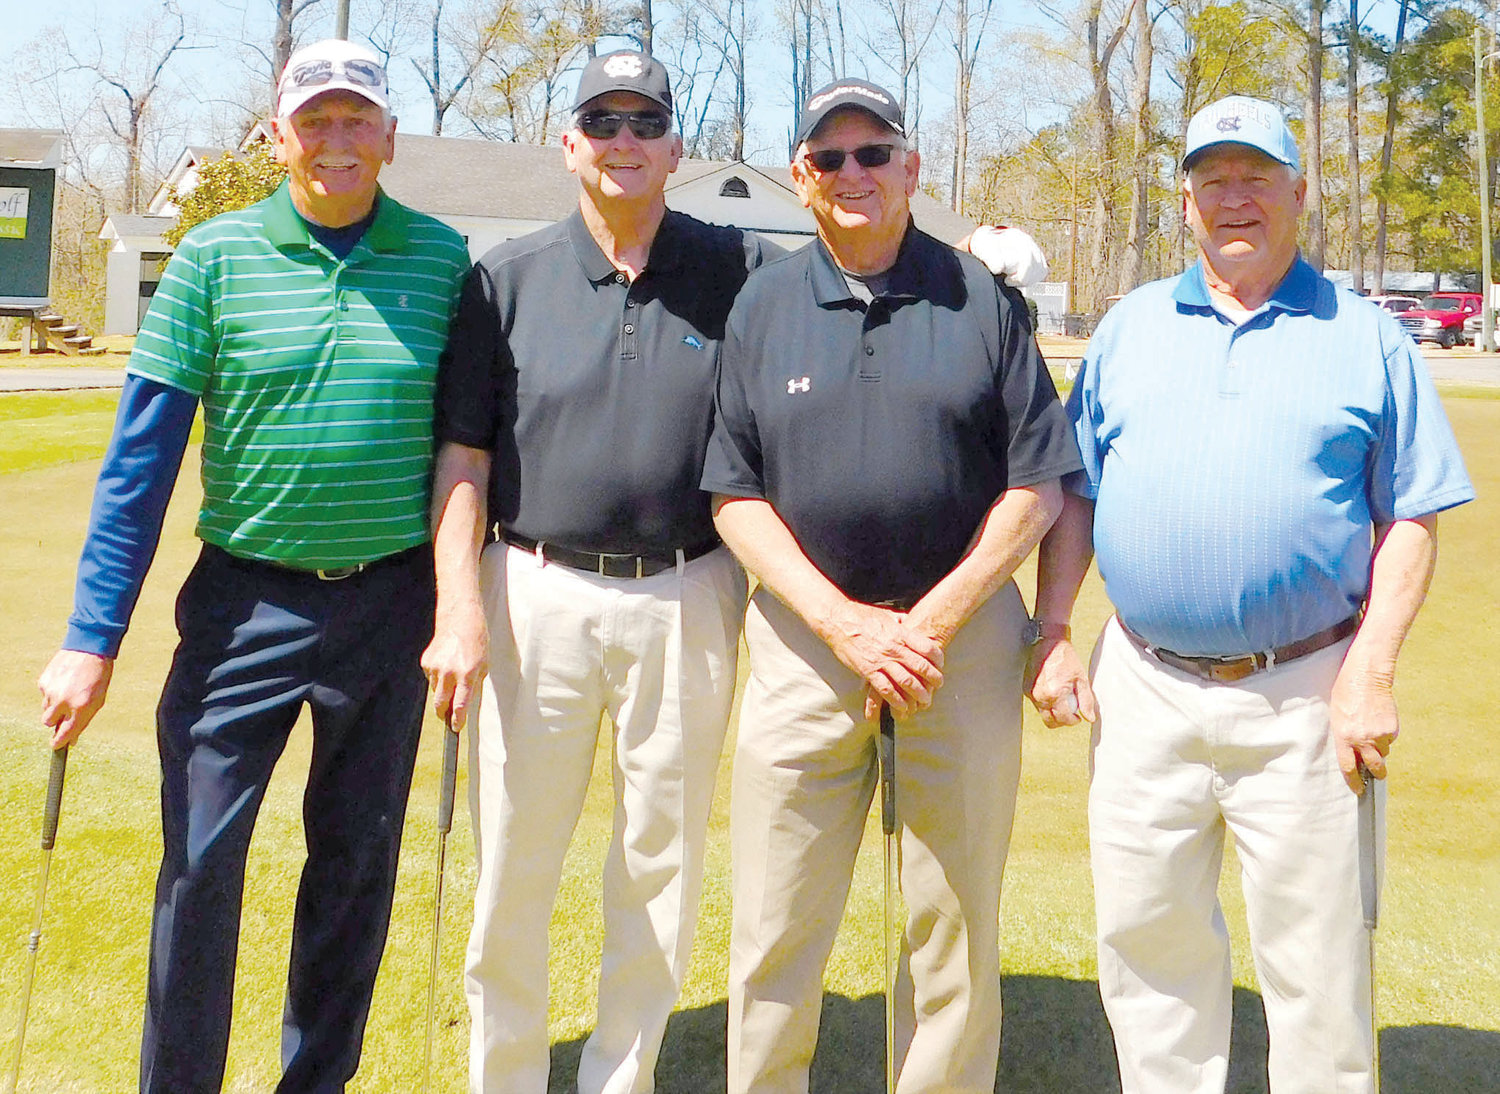 Members of the first flight second-place team in the sixth Central Carolina Community College Foundation Harnett Golf Classic were Johnny Badgett, Larry Badgett, Kenneth Parker and Jeff Wilson.